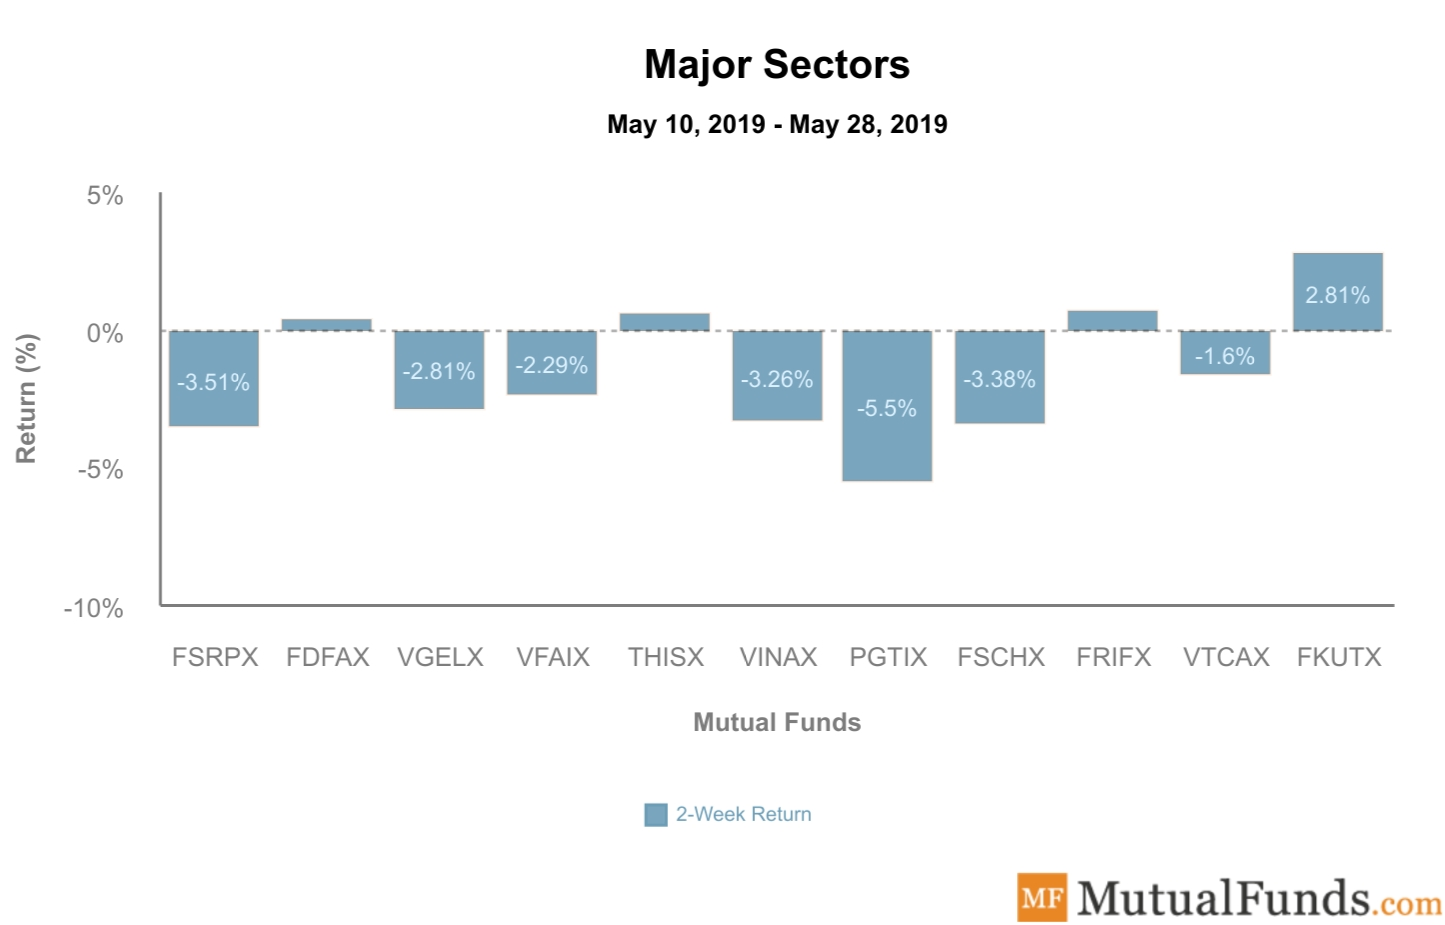 Major Sectors performance - May 29, 2019